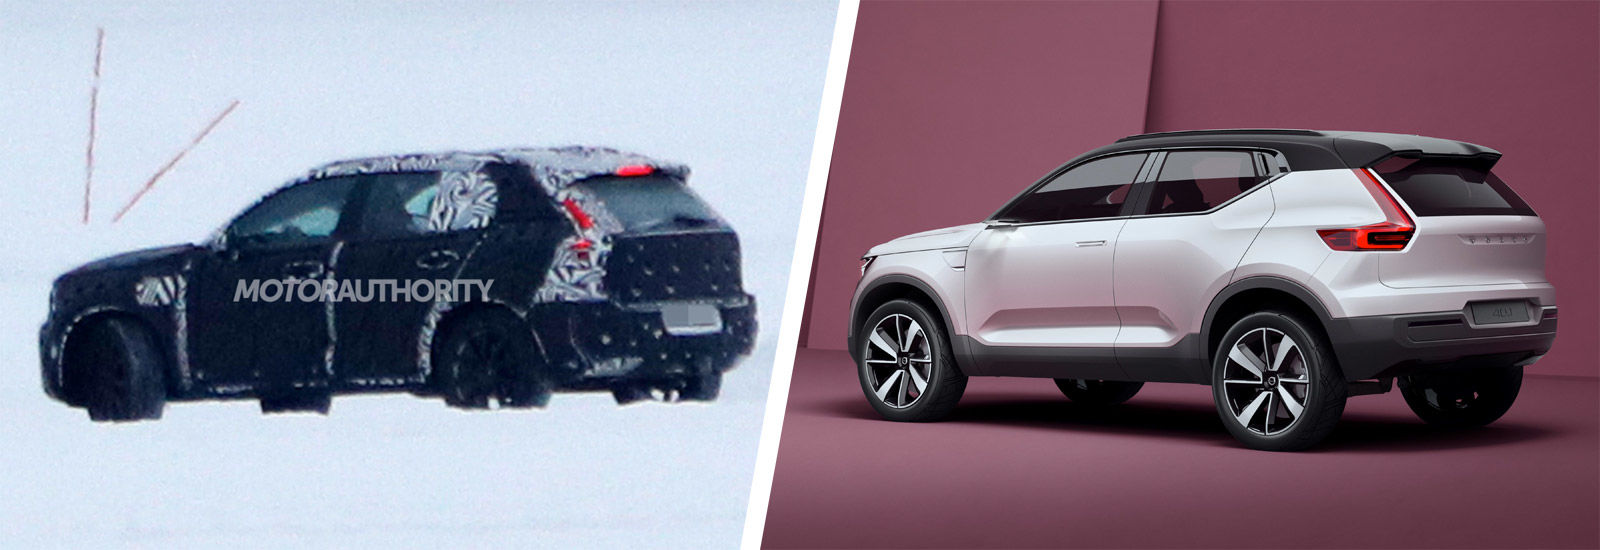 2017 Volvo XC40 price, specs and release date | carwow